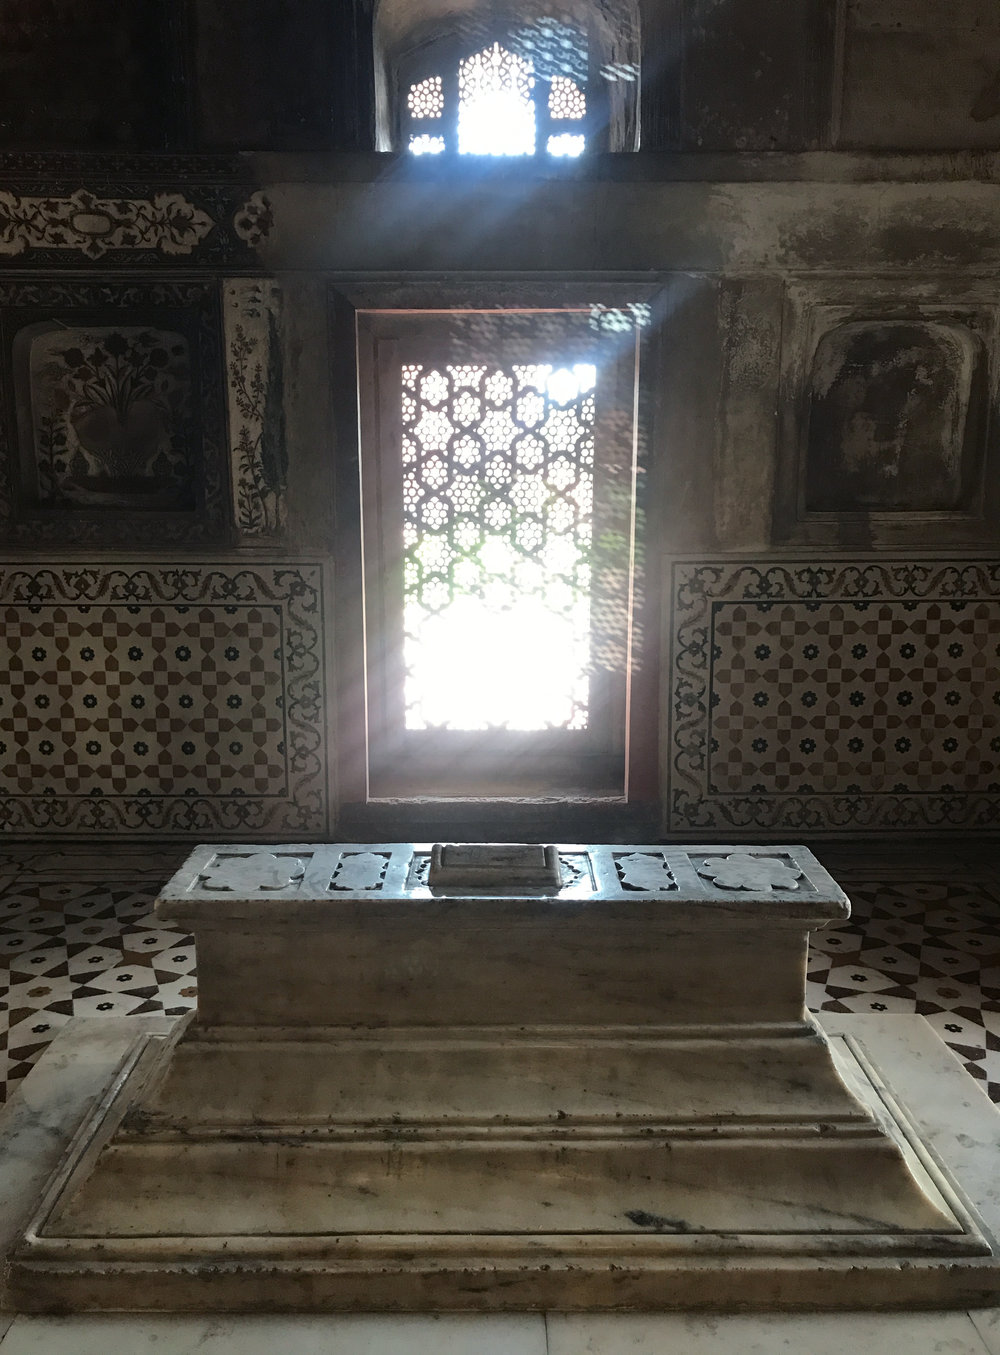 inside the mausoleum